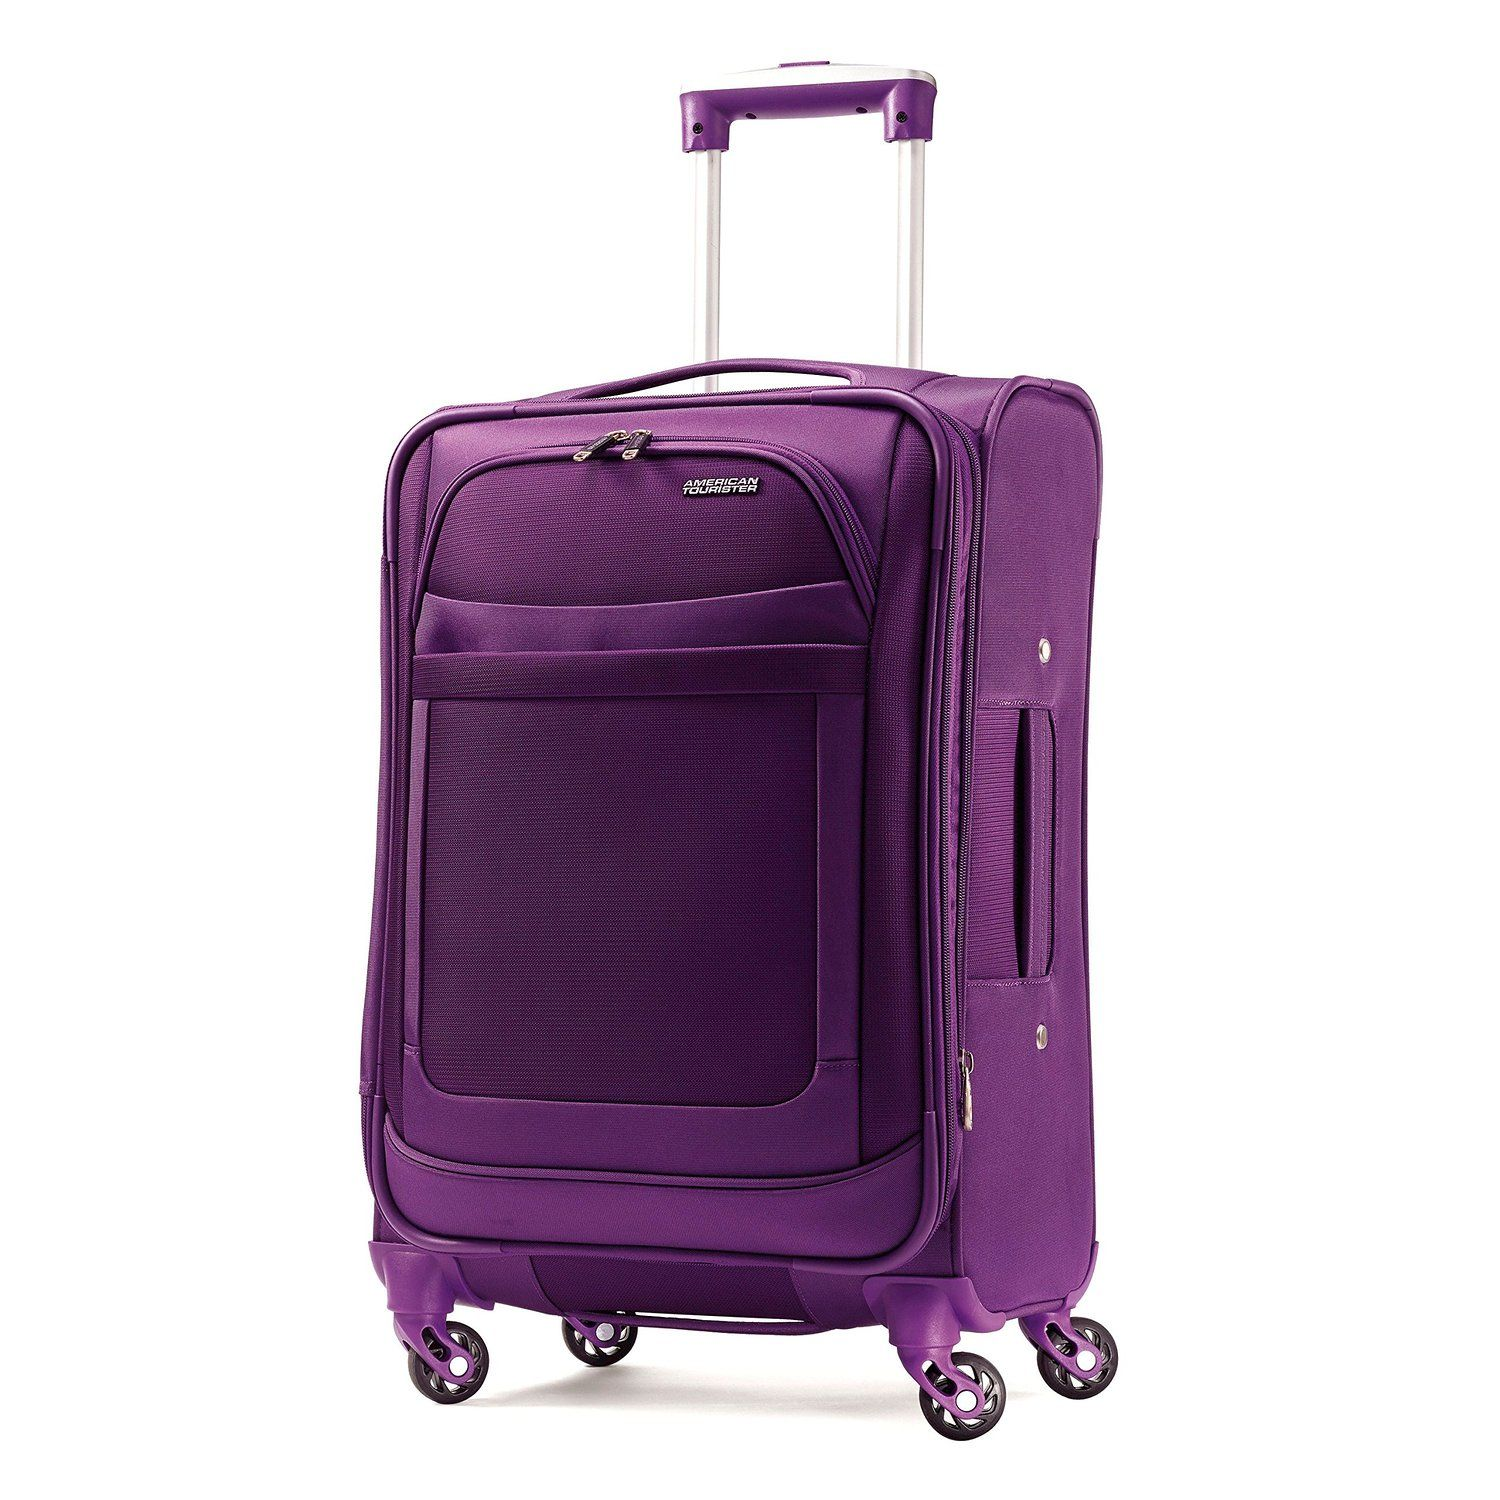 American Tourister Ilite Max Softside Spinner 21 Carry On Luggage ...